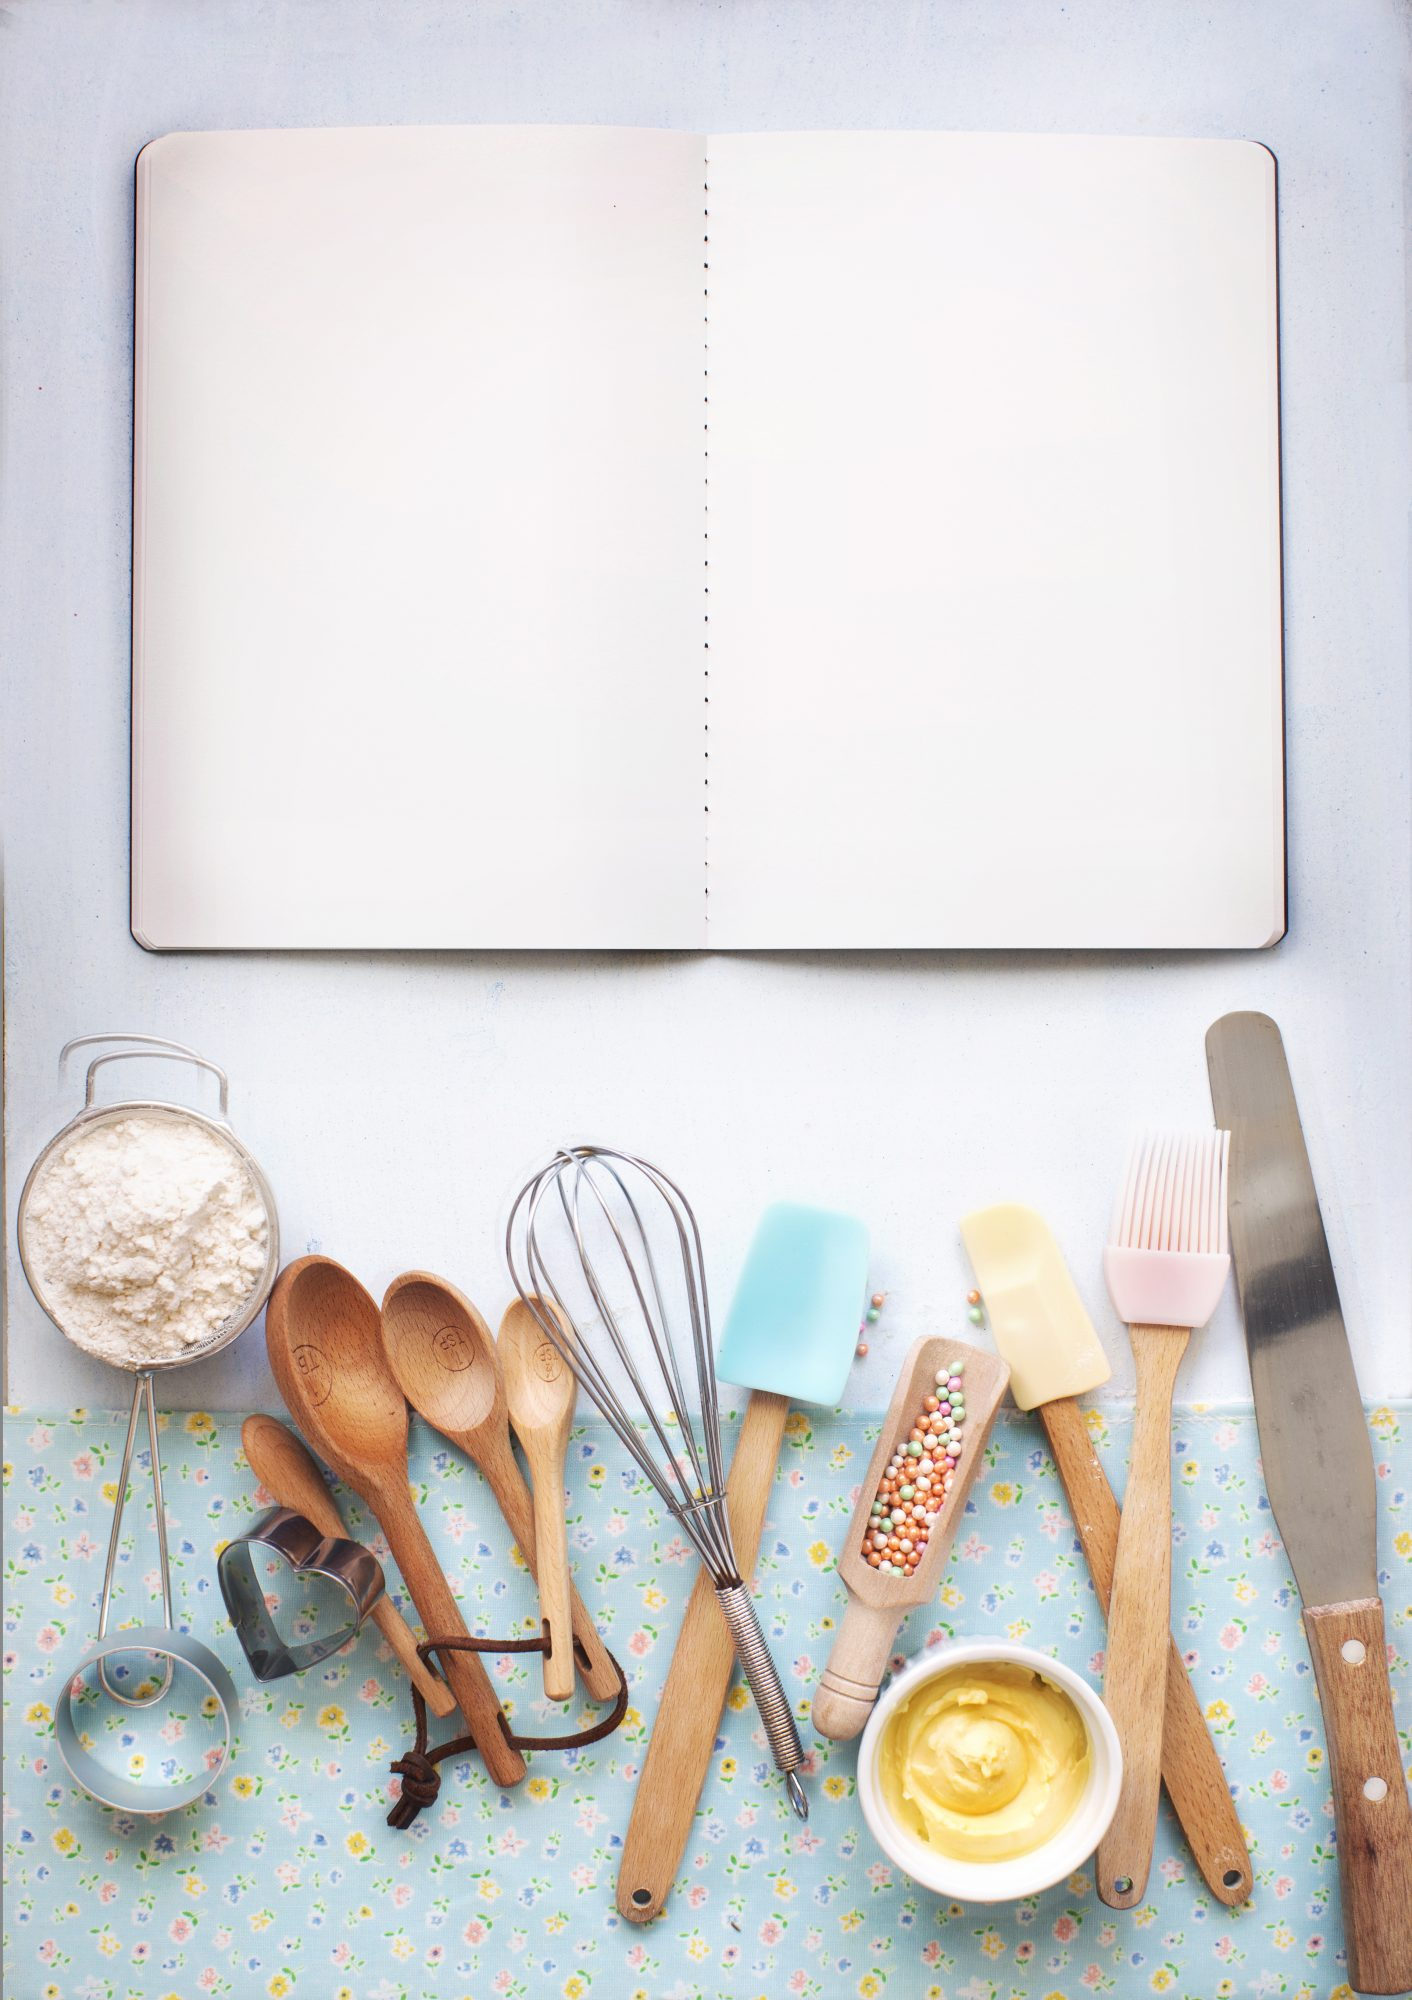 Give Cookbooks Space